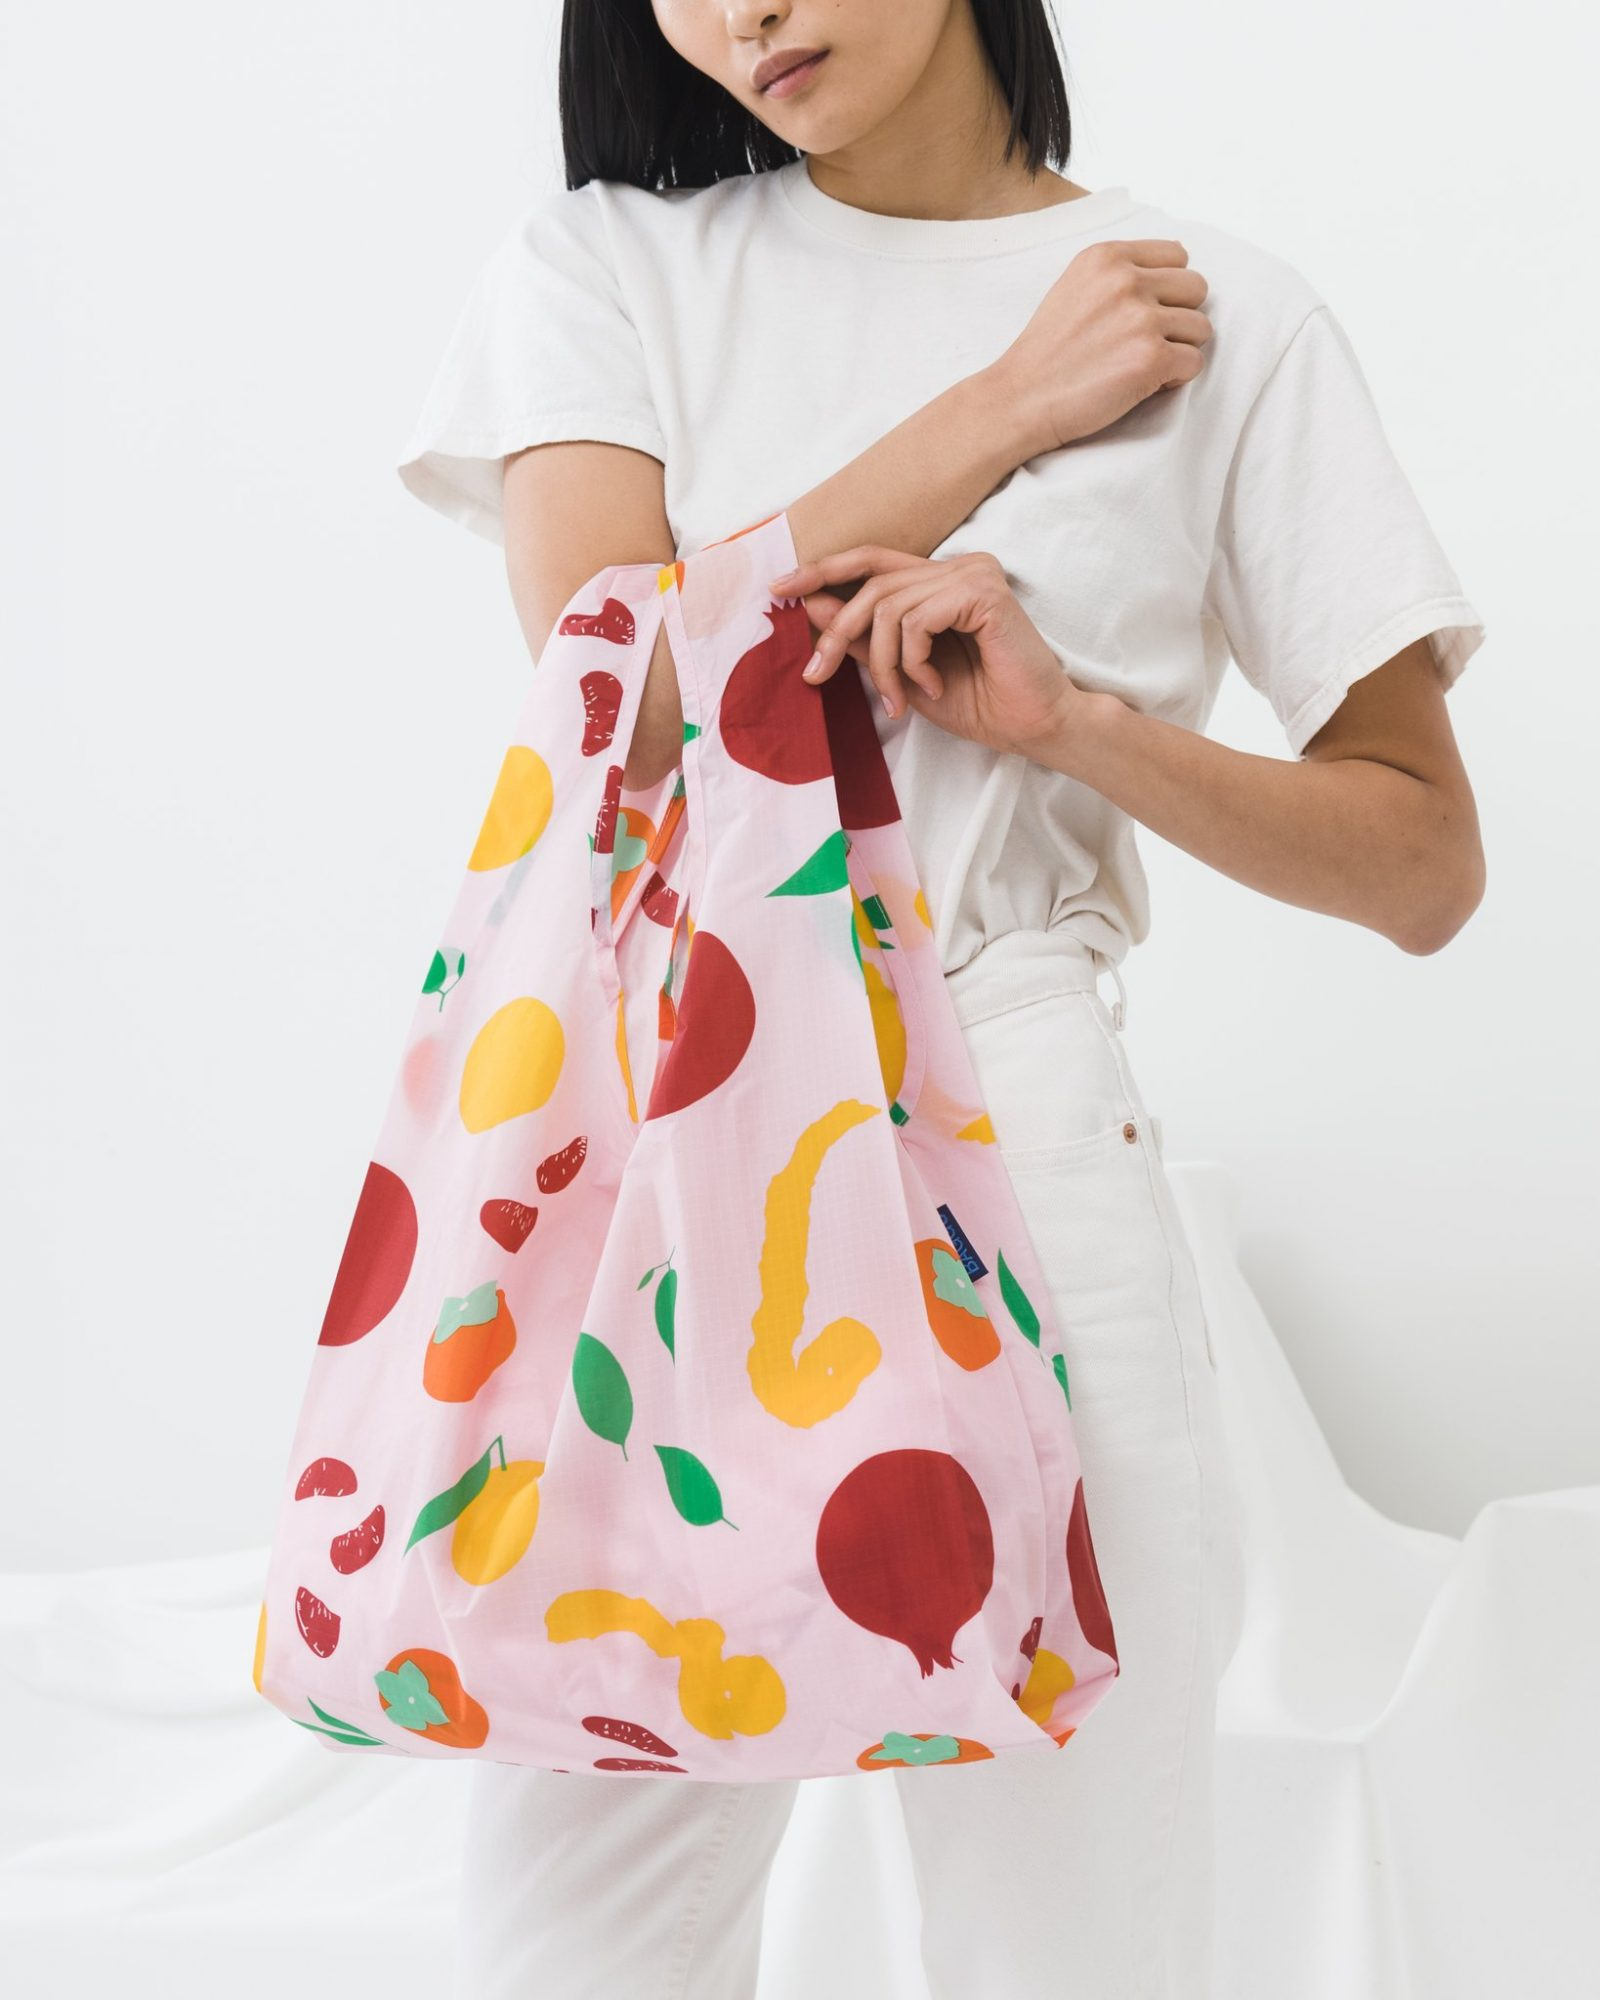 Valentine's Gift Ideas to treat yourself, Fun Tote Bag